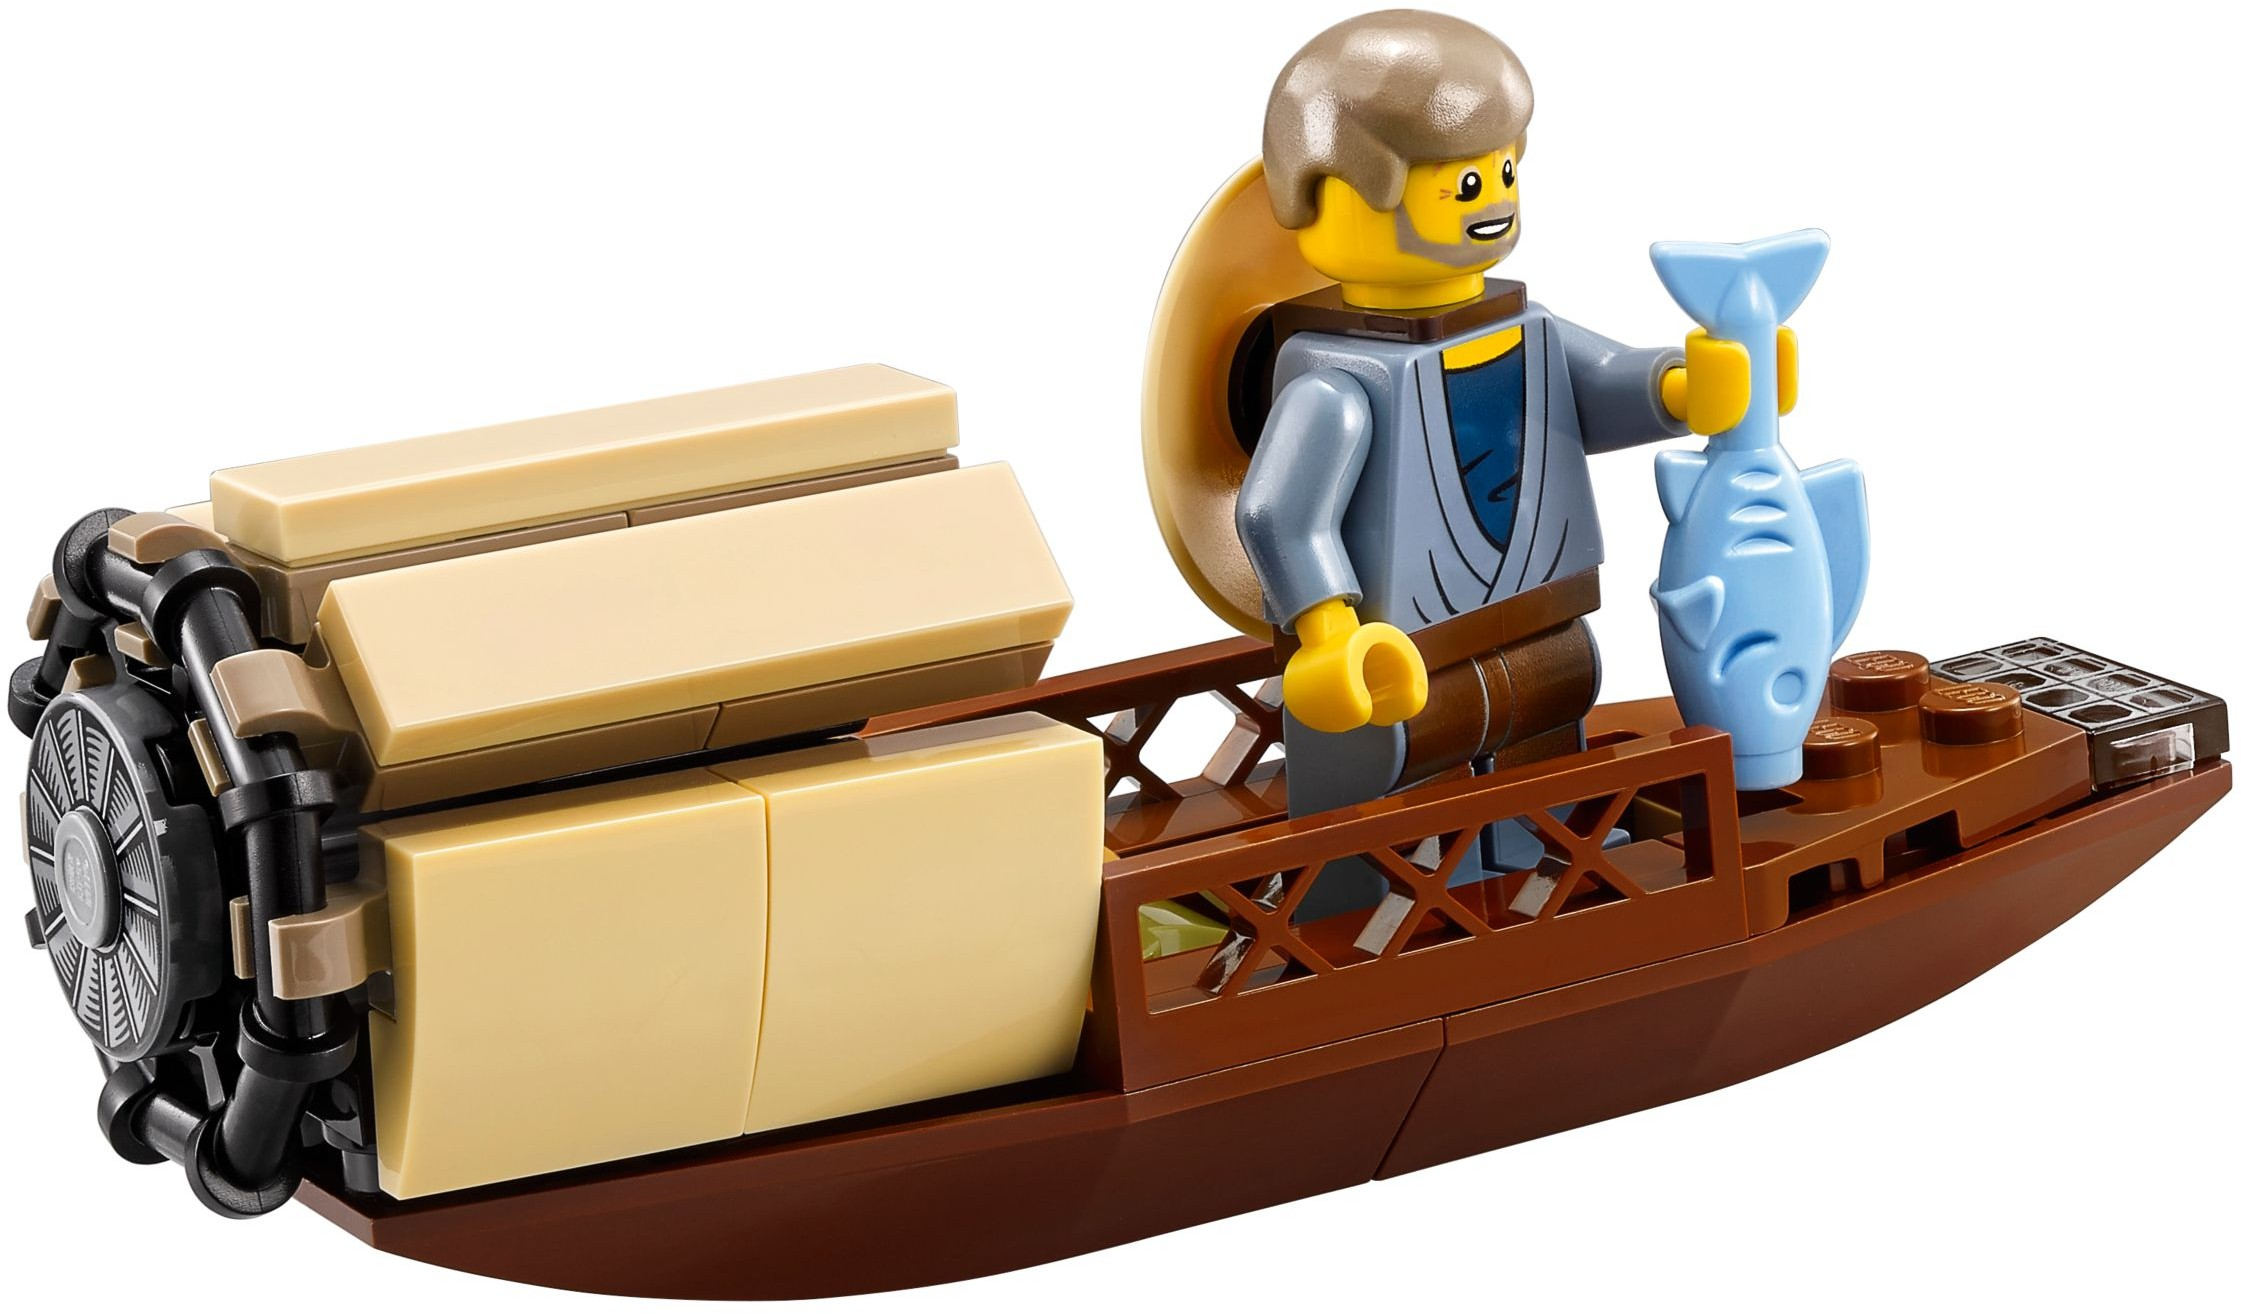 https://images.brickset.com/sets/AdditionalImages/70620-1/70620_alt17.jpg